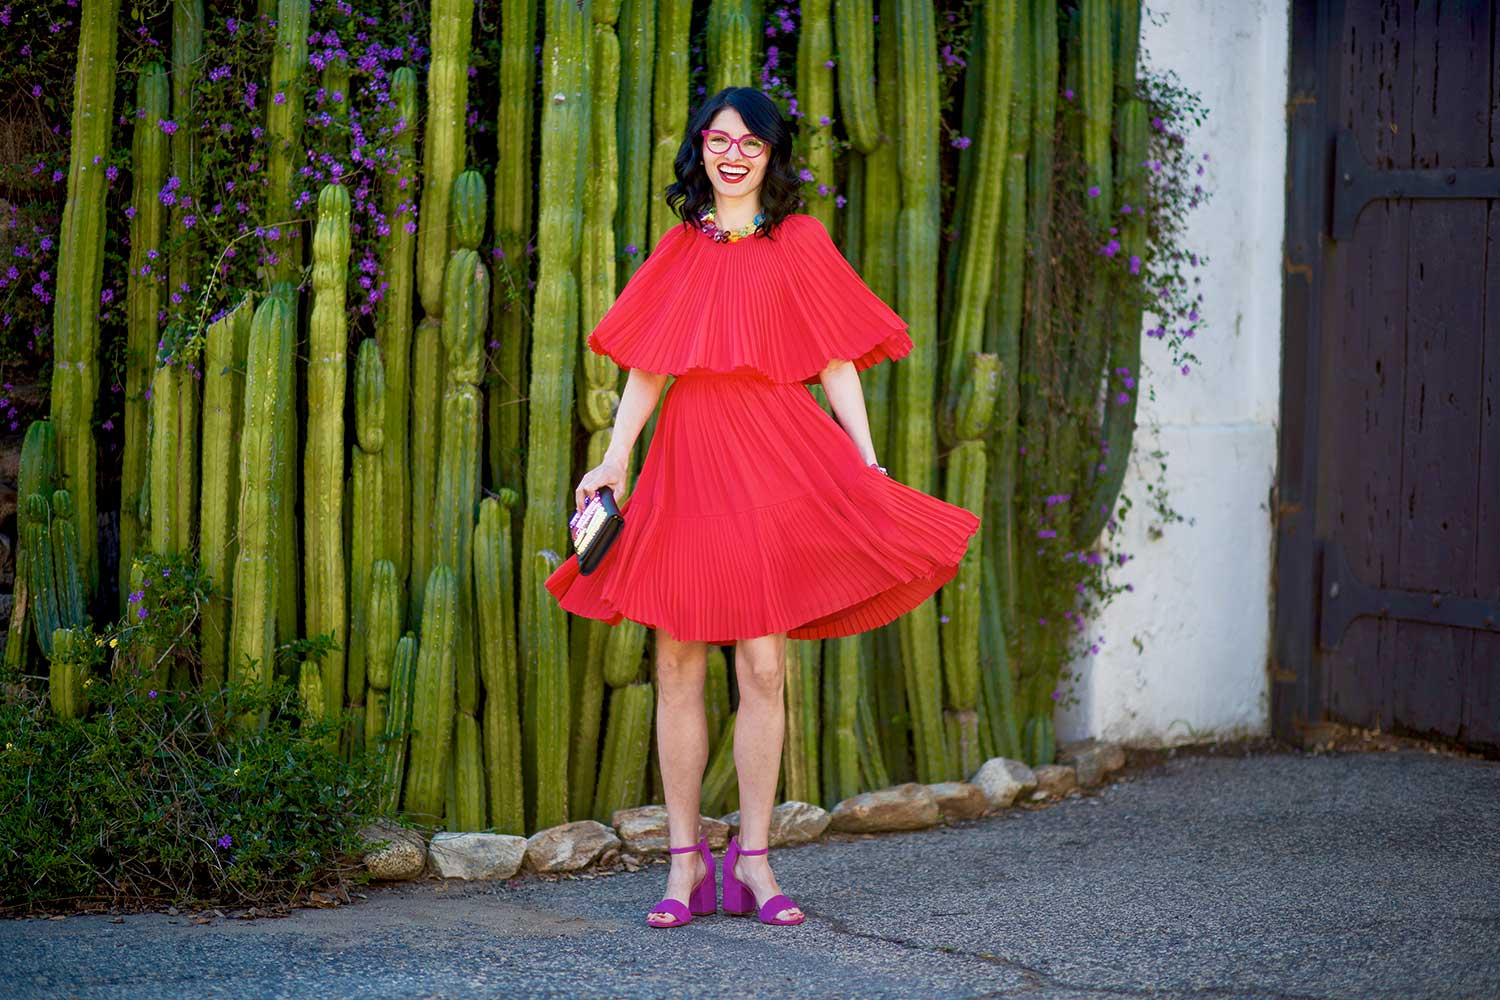 Jenna-Pilant-San-Diego-Style-Blogger-Lucky-Little-Mustardseed-What-To-Wear-To-A-Desert-Wedding-6